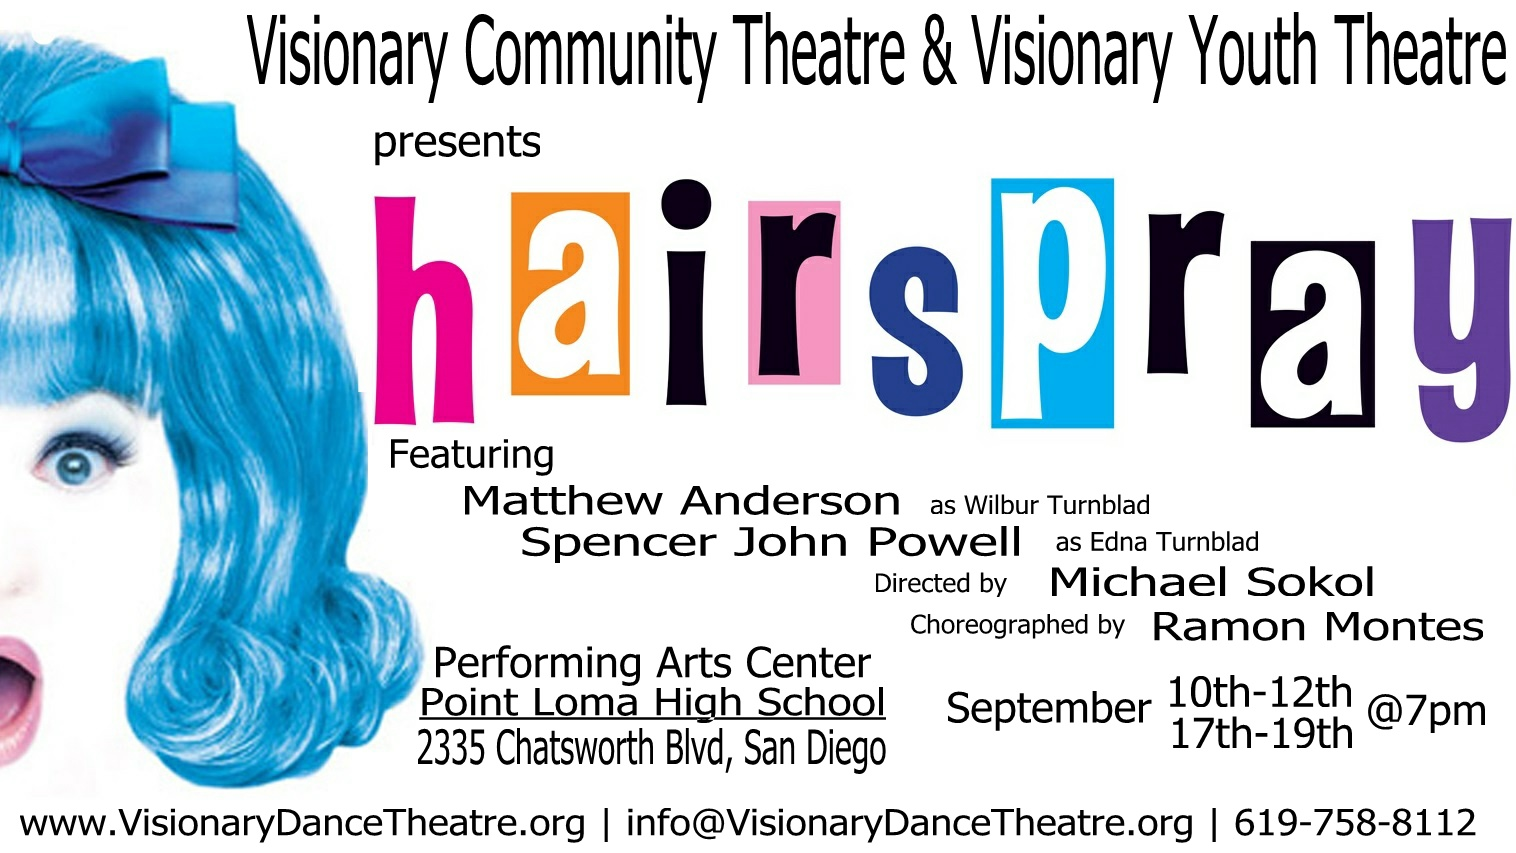 Poster_2015_VCT_Hairspray